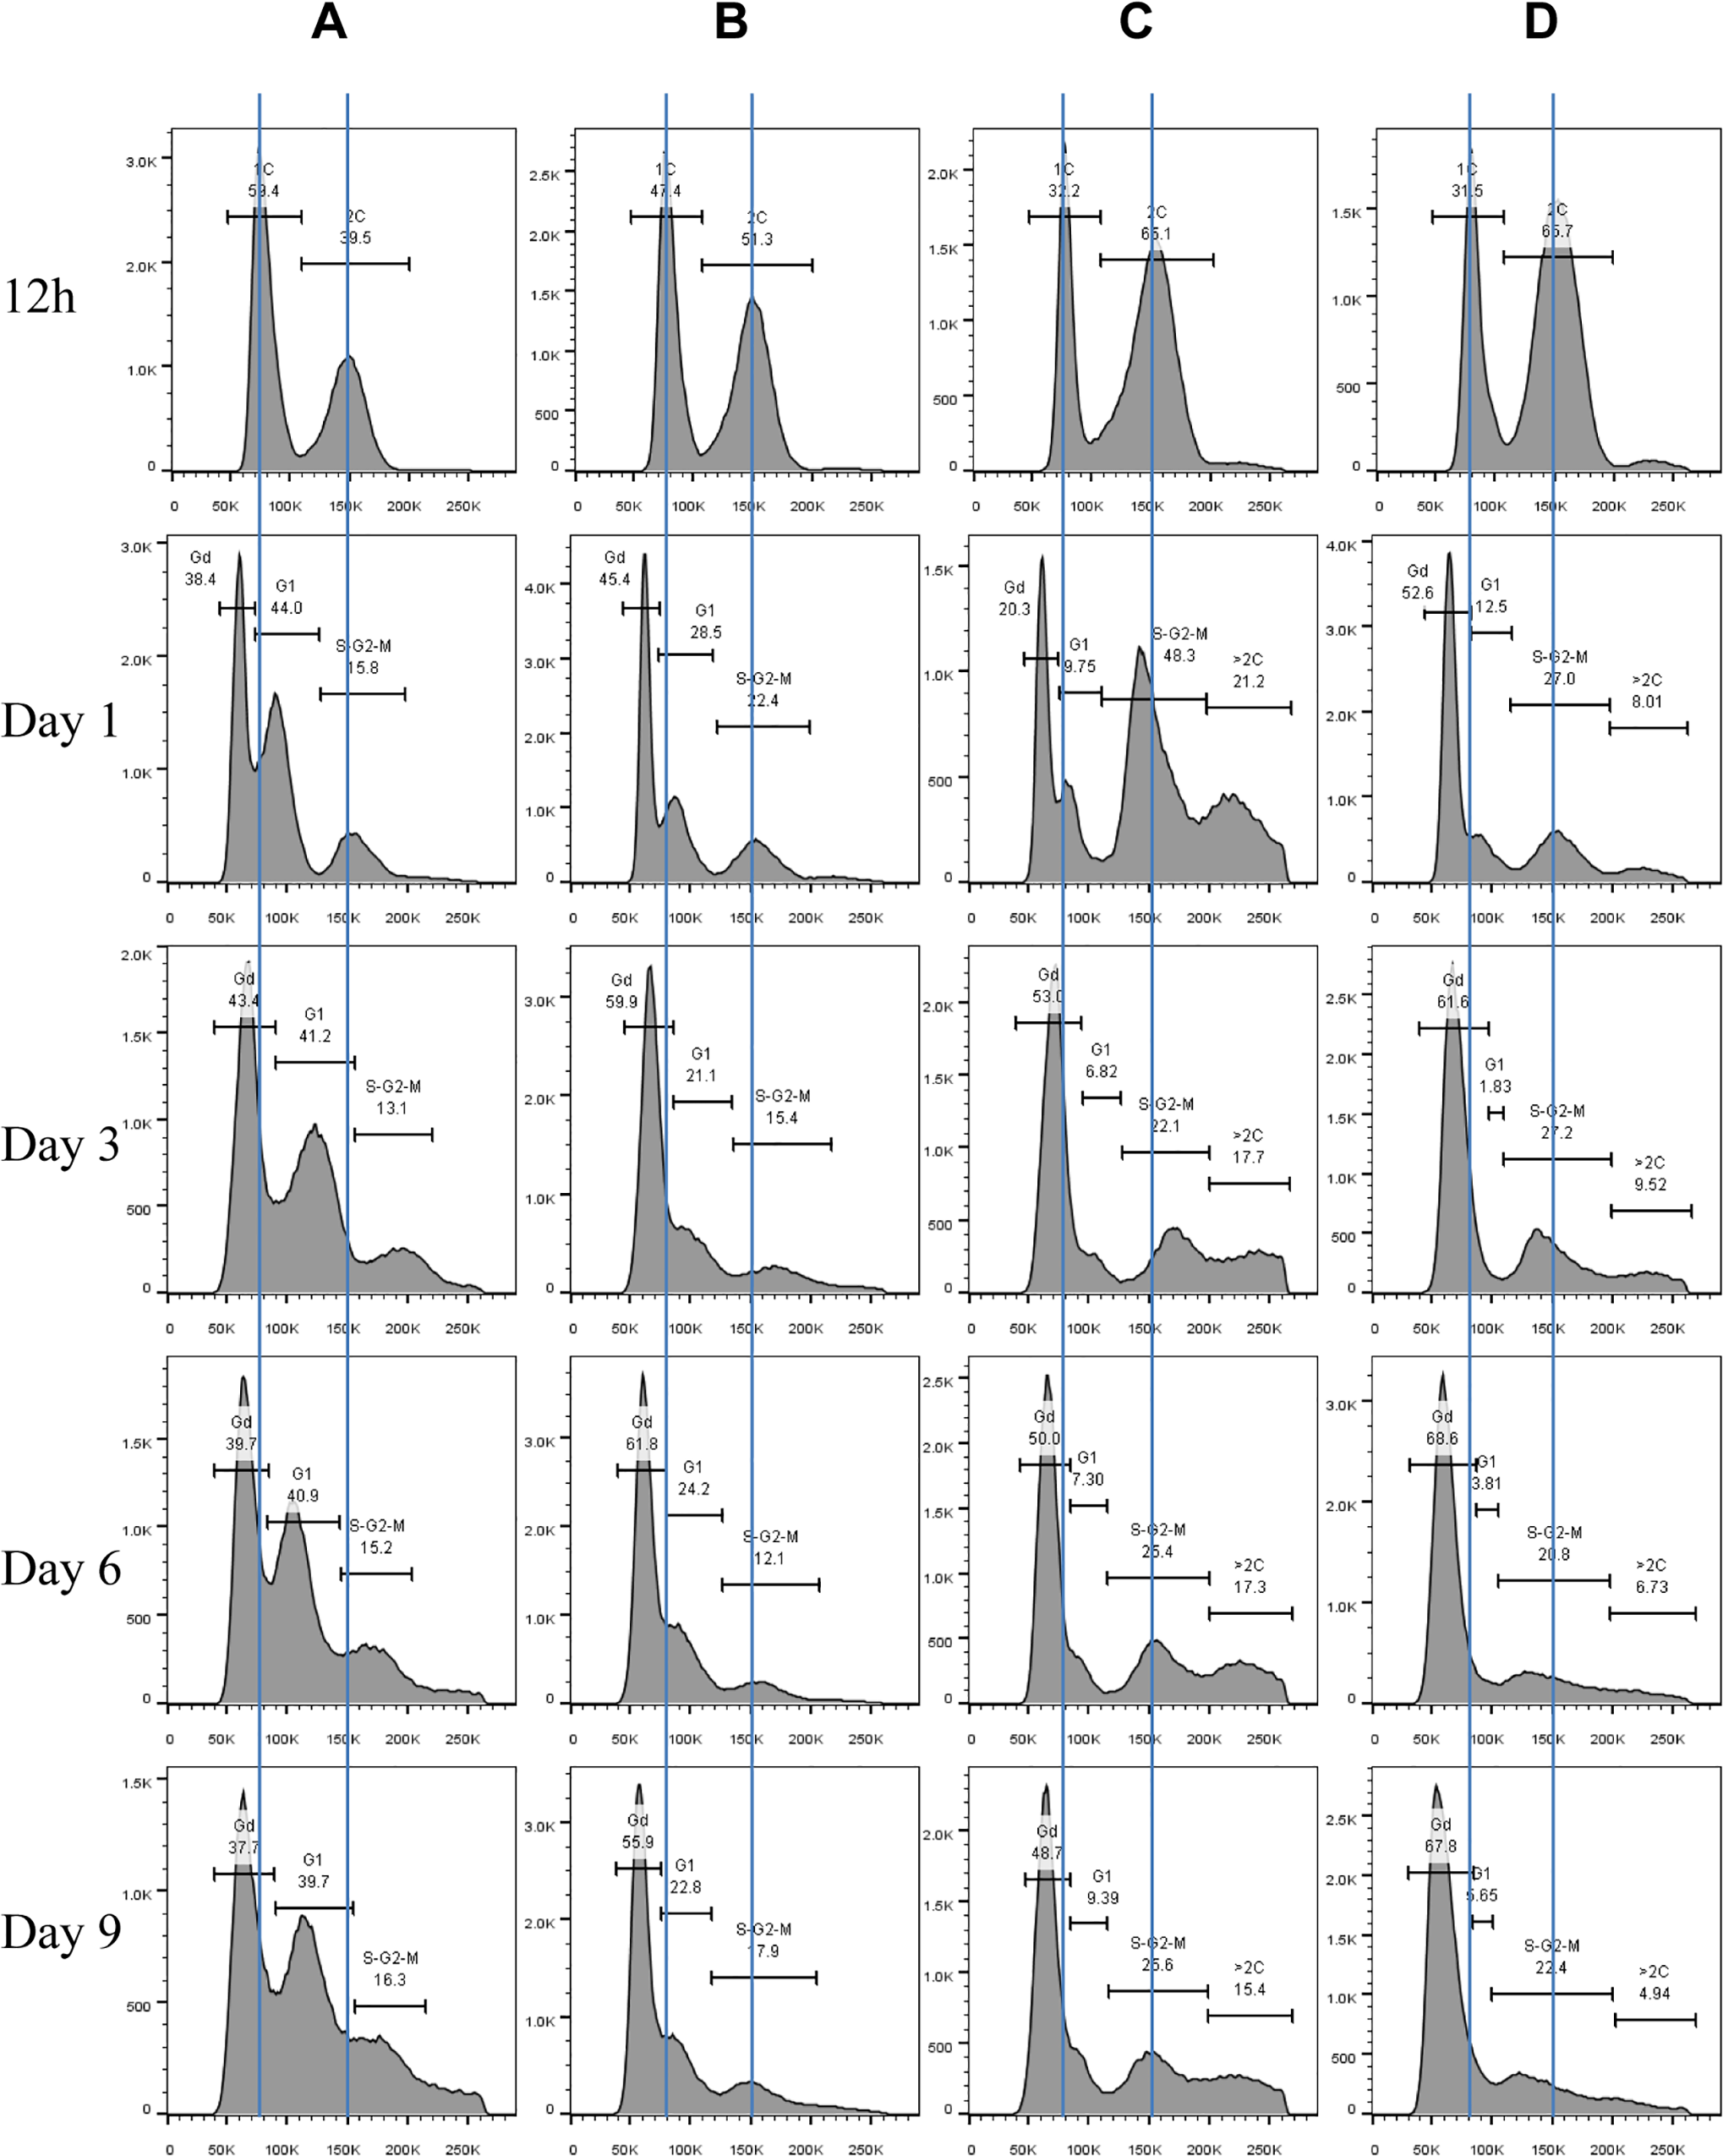 Histograms of Sytox green staining signals in WT (A), <i>rim15∆</i> (B), <i>mck1∆</i> (C), and <i>rim15∆mck1∆</i> (D) cells at the diauxic shift (12h), day 1, day 3, day 6 and day 9.